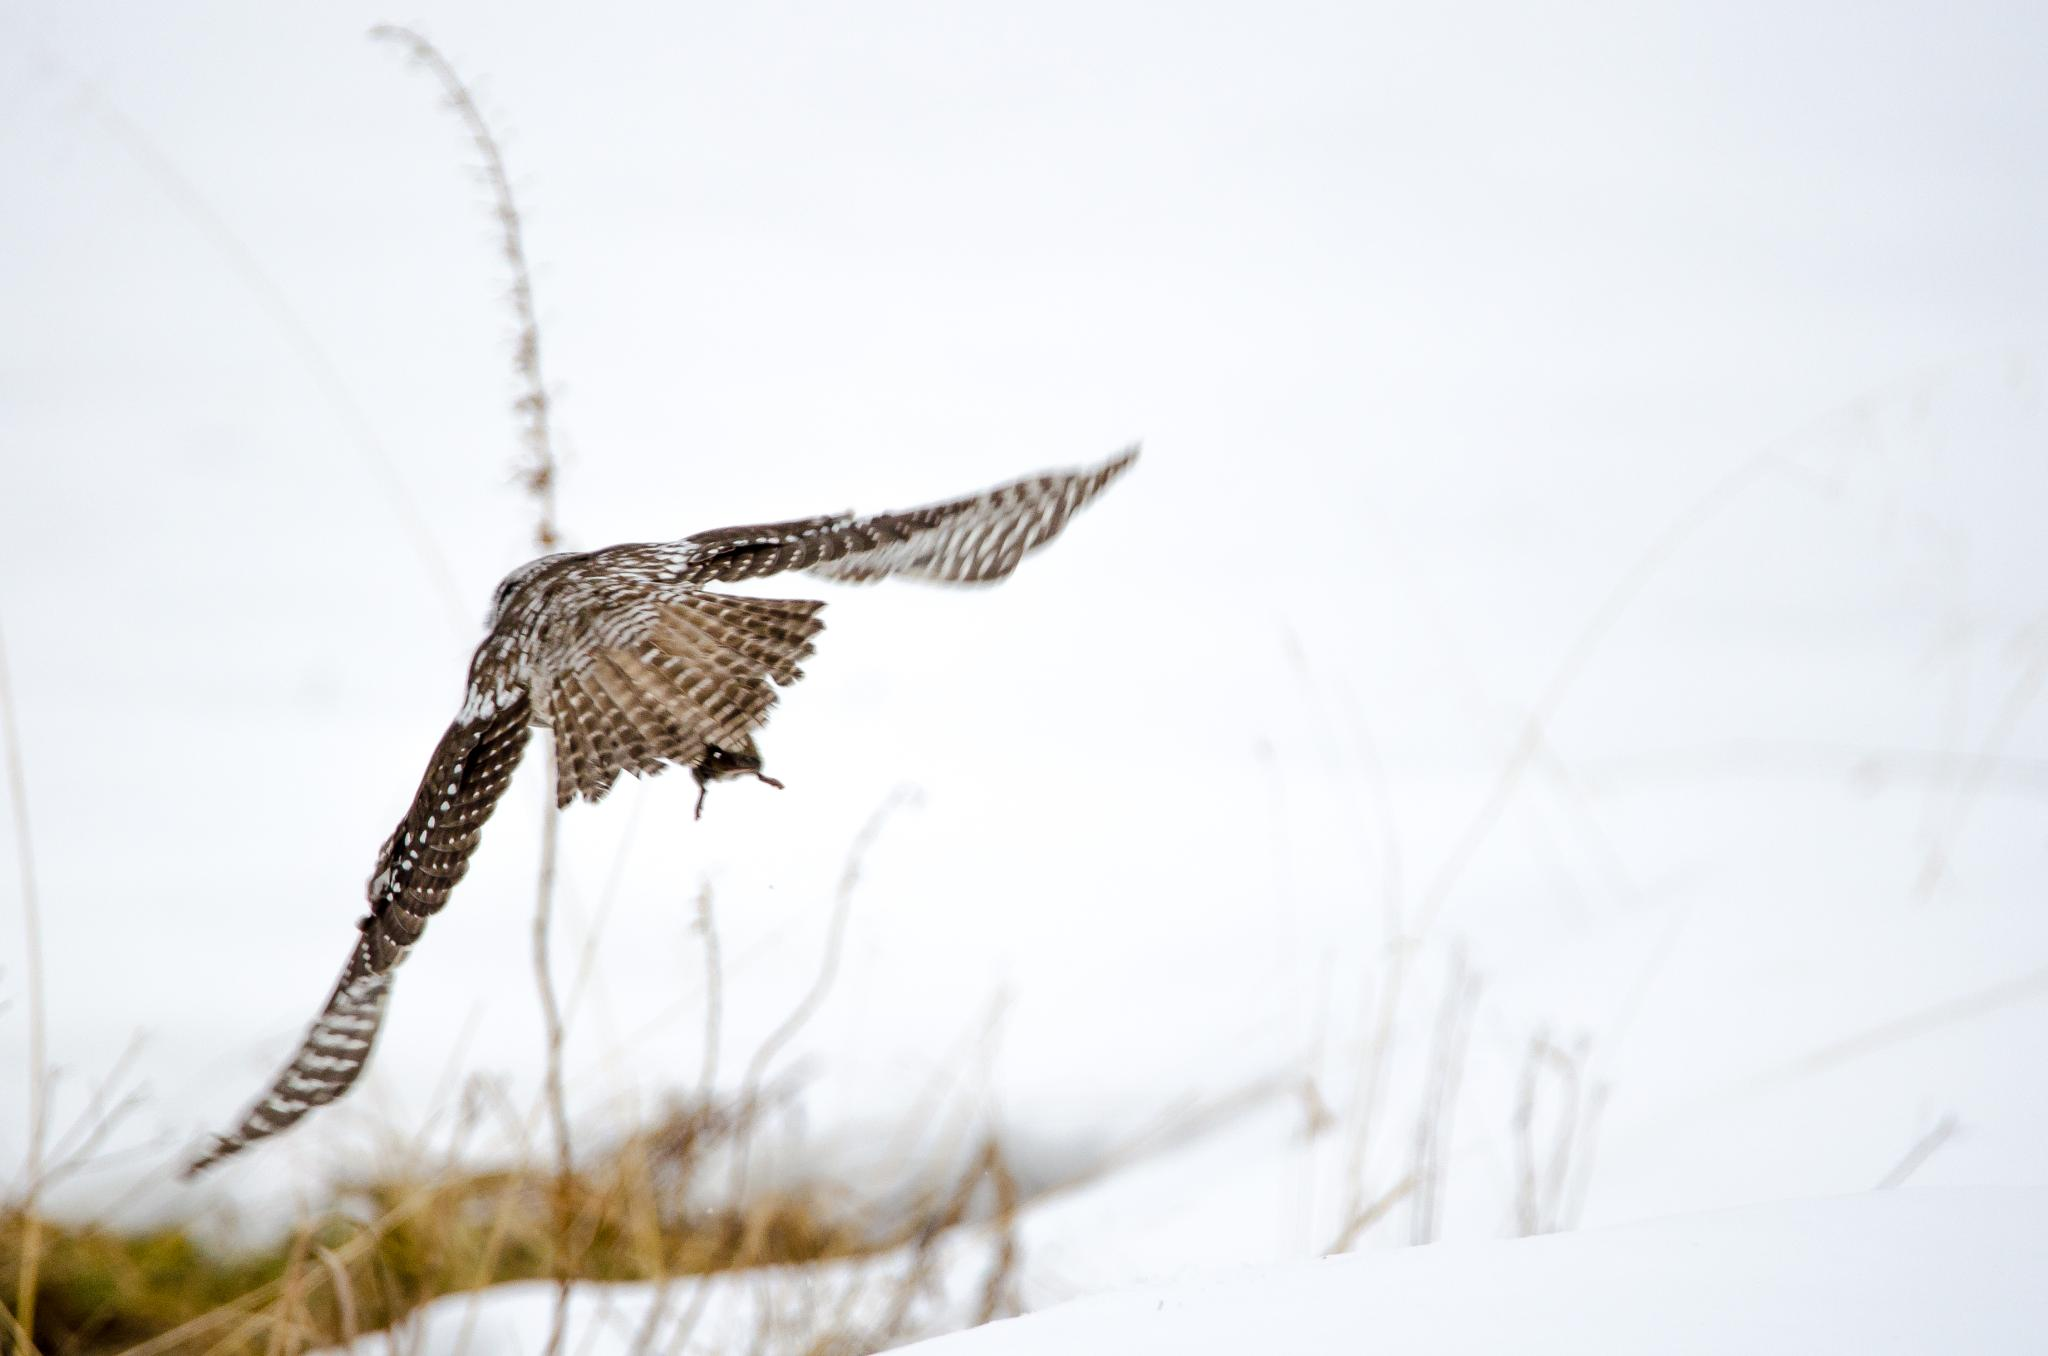 Northern hawk owl with catch by Roy Haakon Friskilae